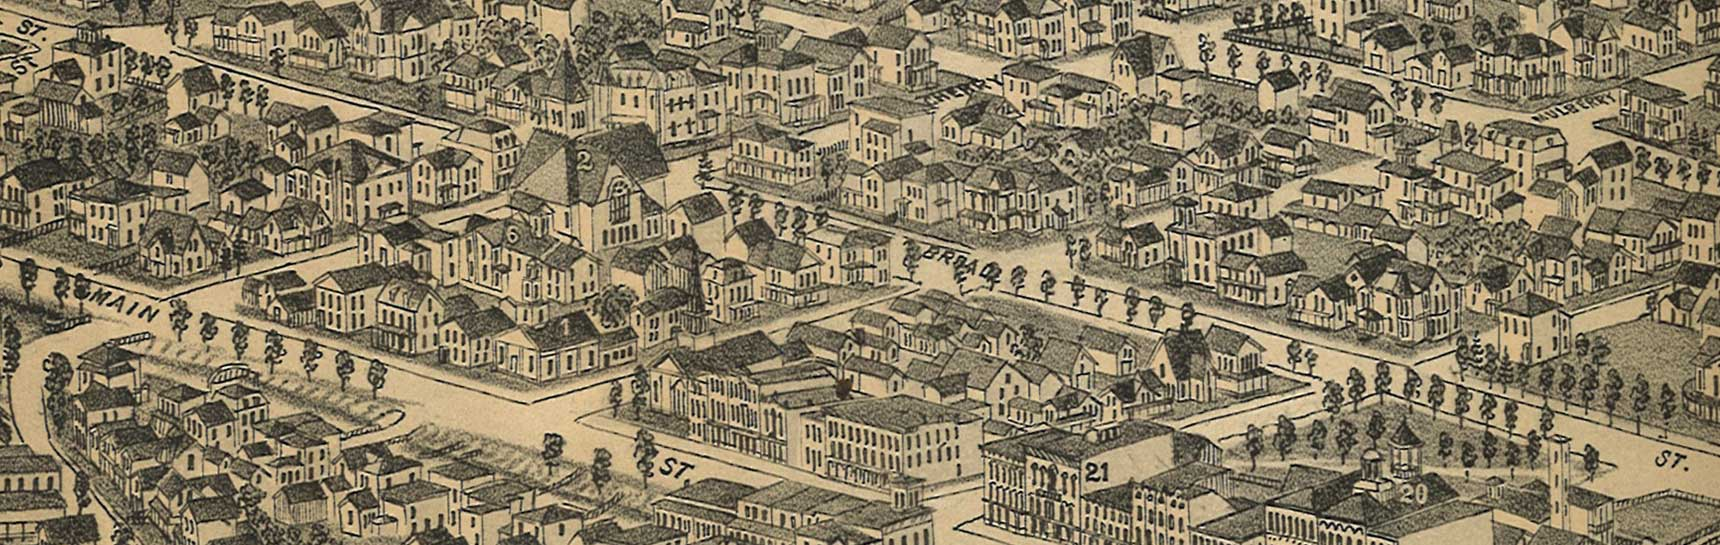 Part of Birds Eye View Map of Oneida, NY